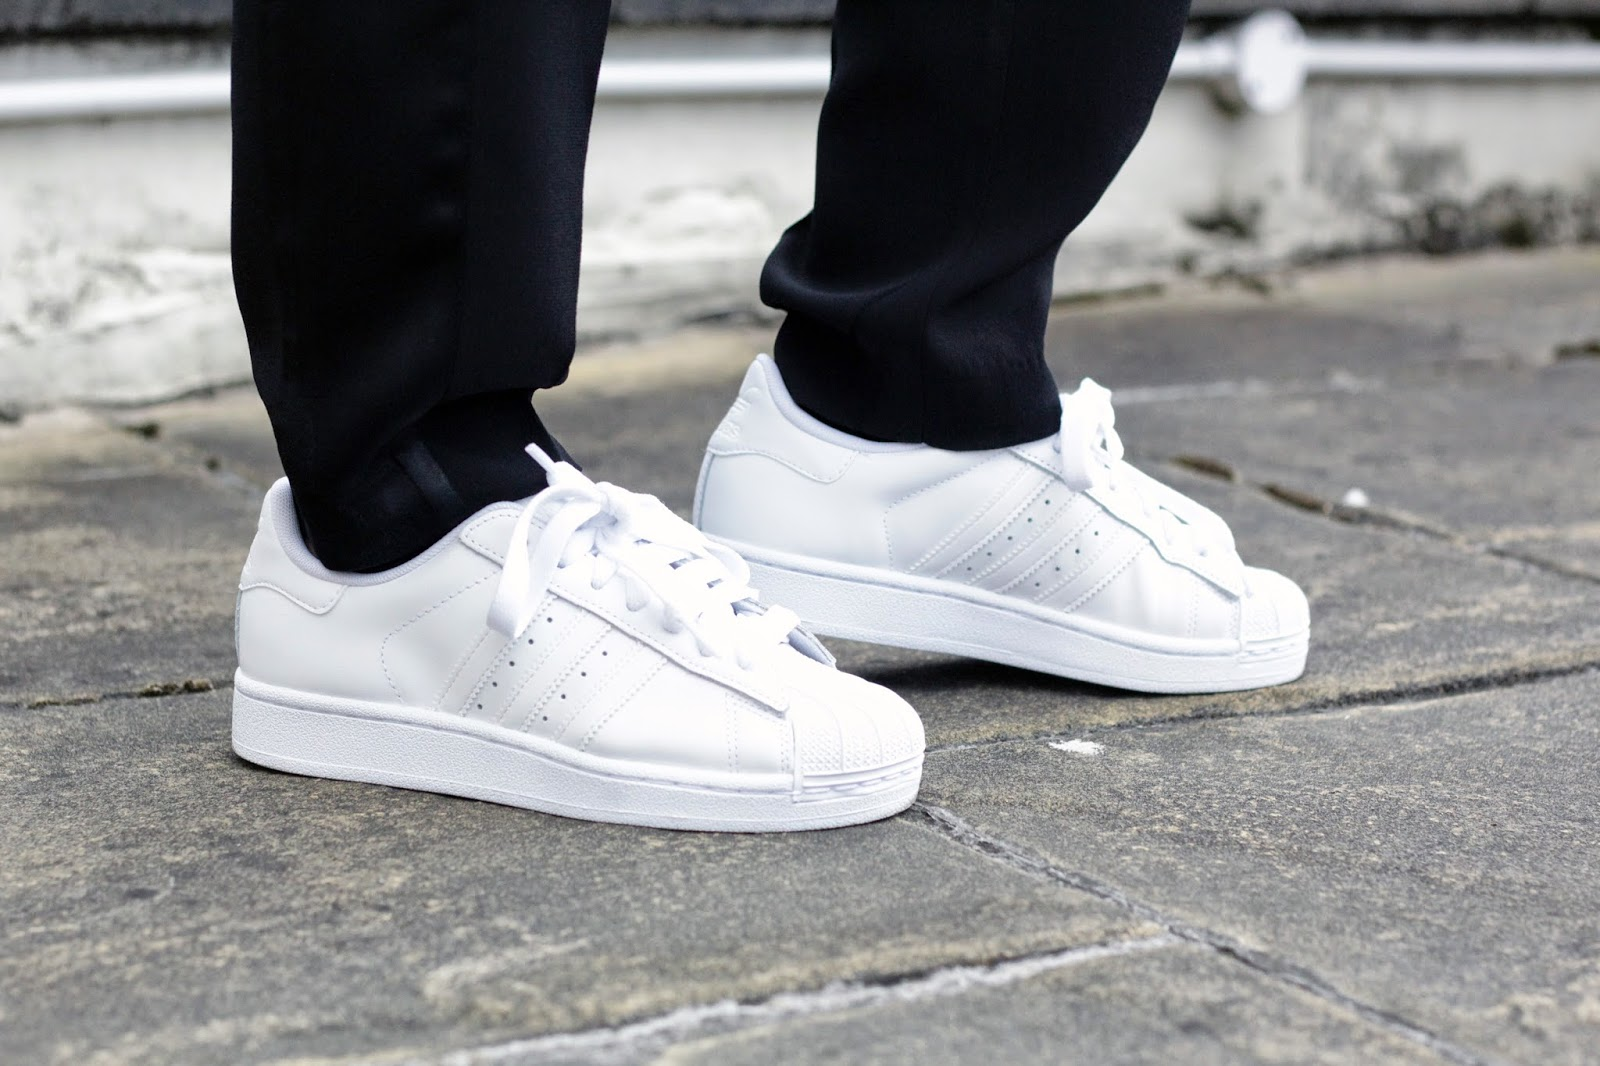 Adidas Originals Superstar II Street Style